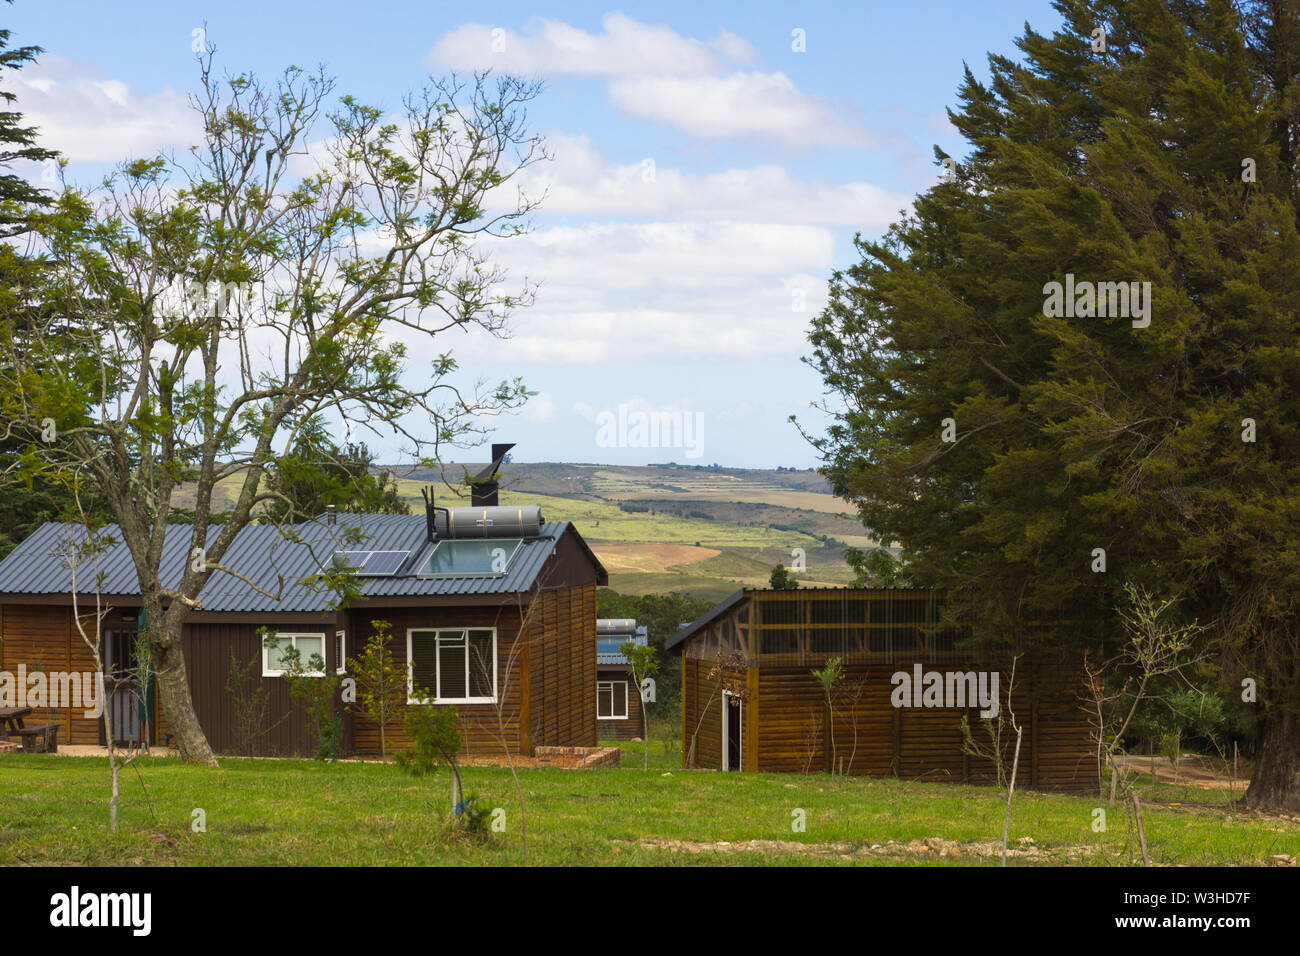 Grootvadersbosch self catering log cabins or chalet accommodation in the  nature reserve Langeberg region close to Heidelberg in the Cape,South Africa Stock Photo